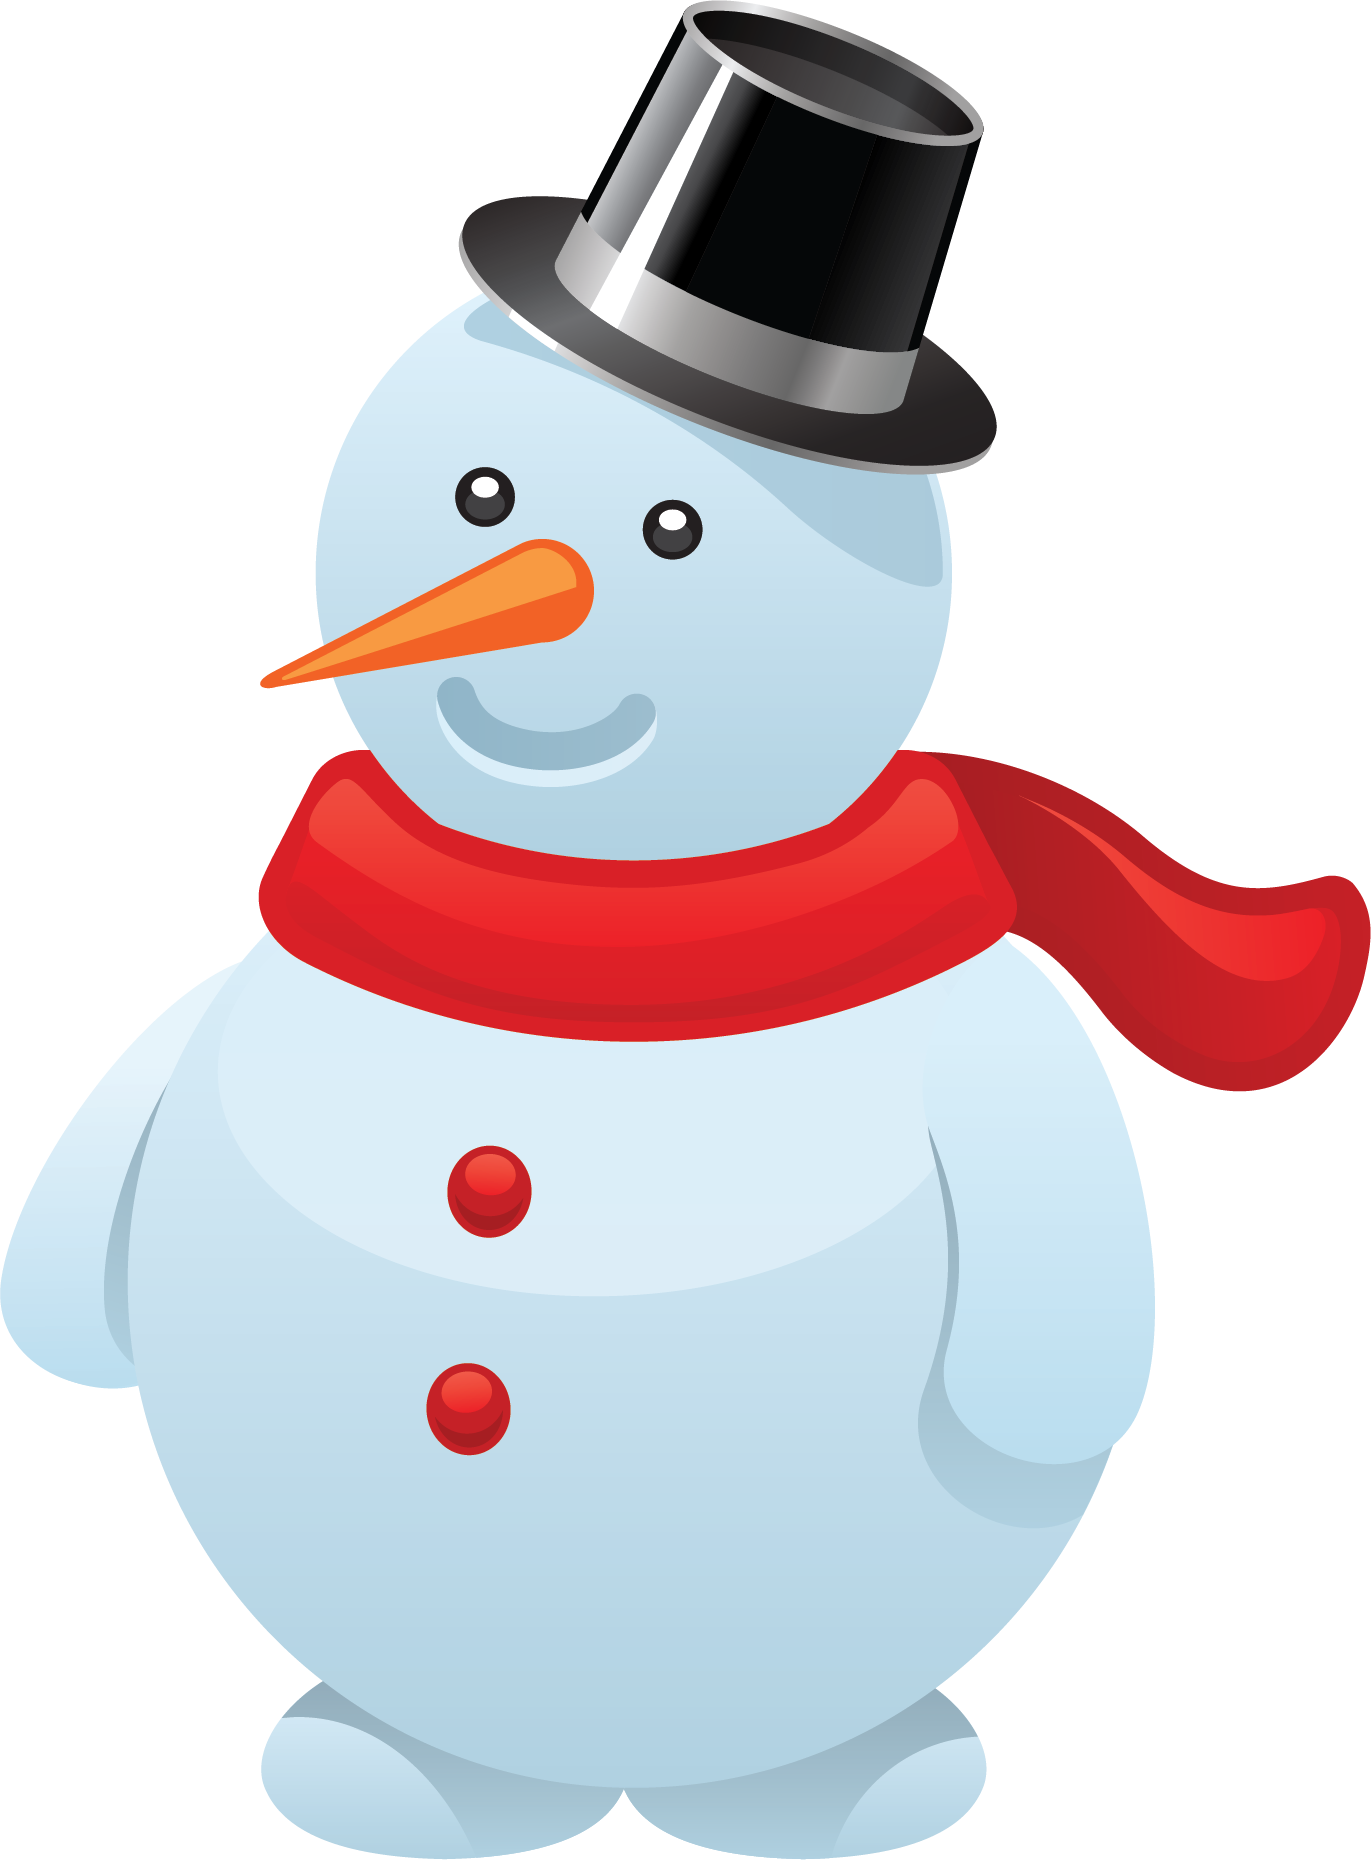 happy holidays clipart snowman